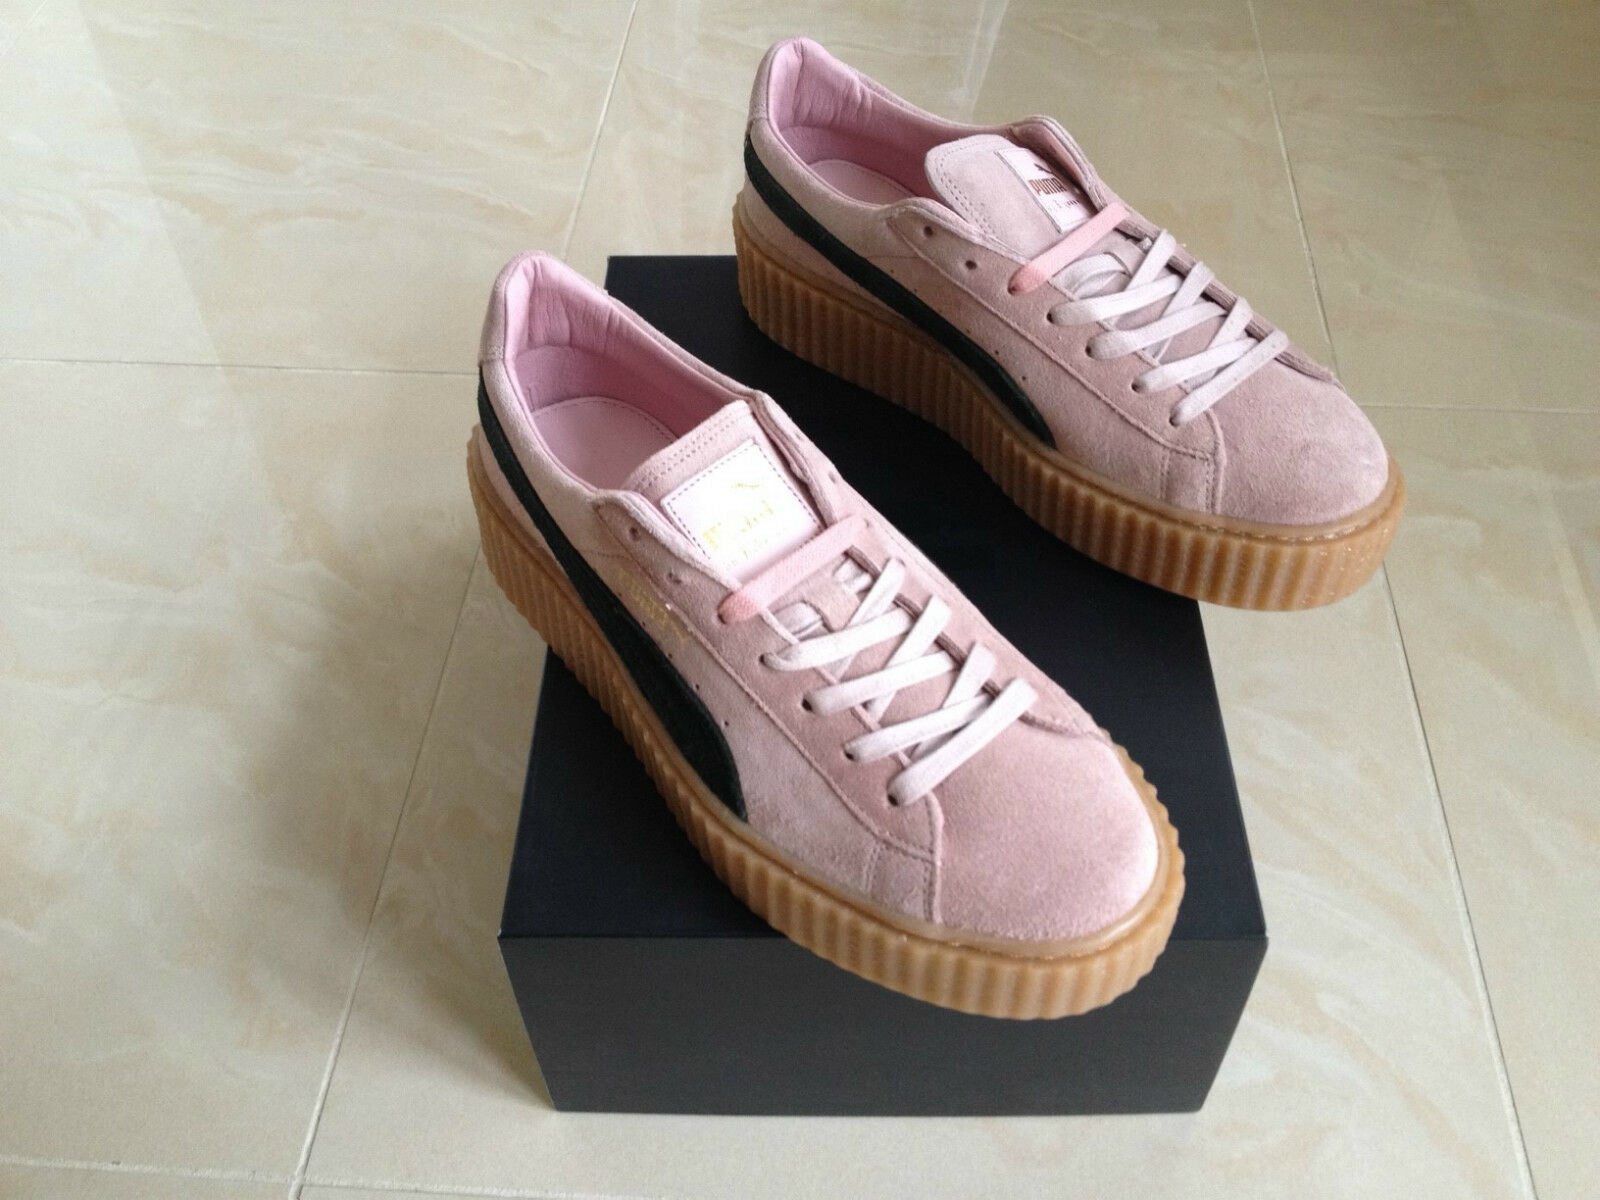 PUMA RIHANNA PINK SUEDE CREEPERS FENTY ALLTailleS TRAINERS NEW 3 4 5 6 7